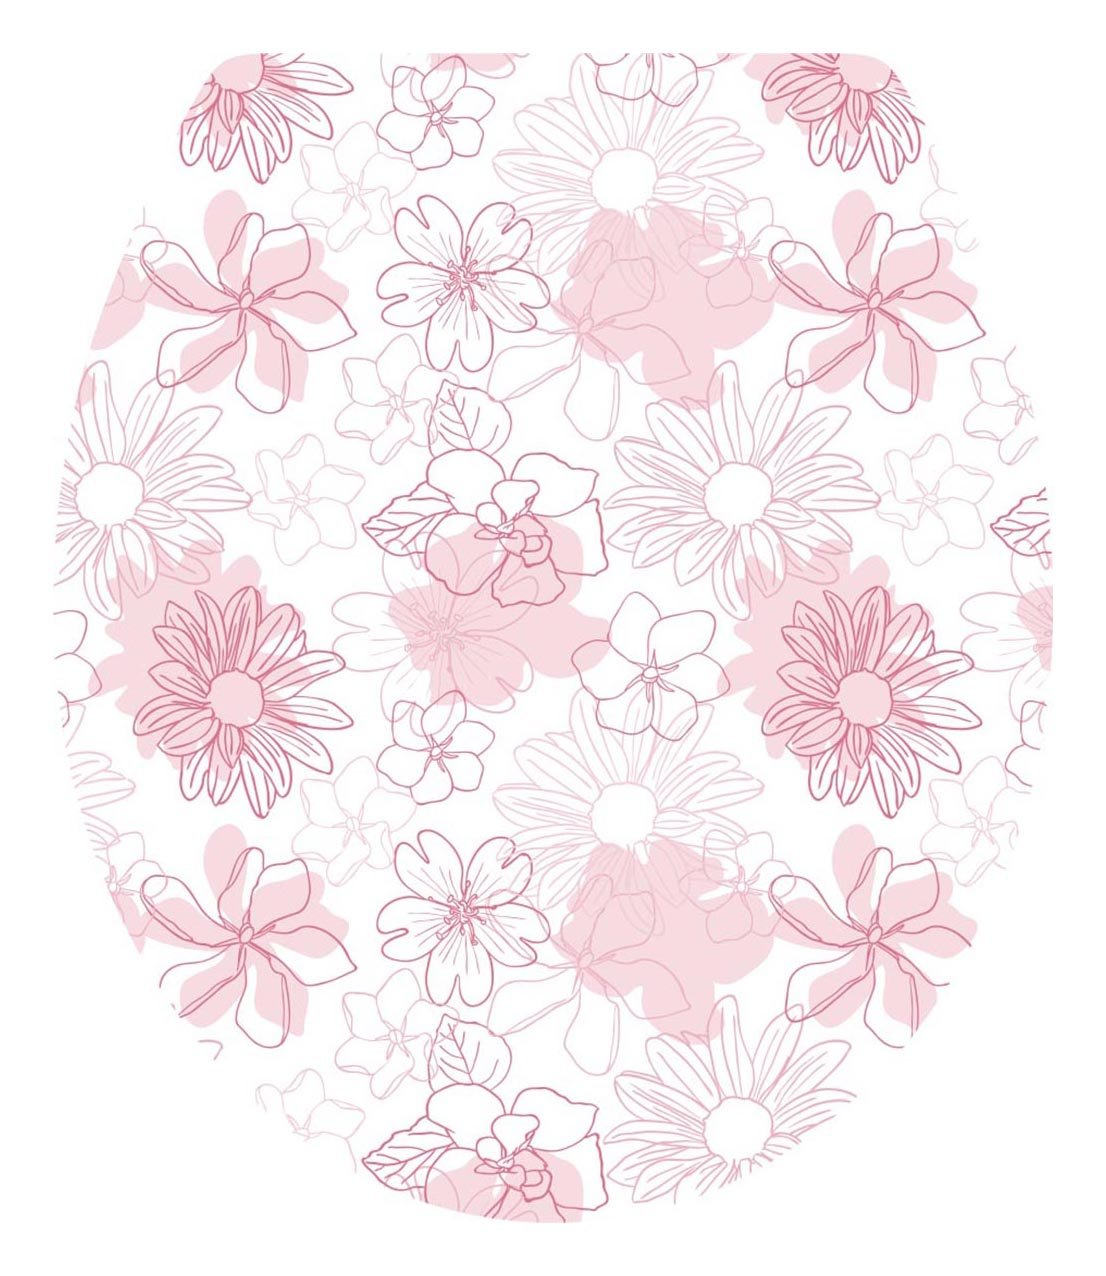 DNVEN 13 inches x 15 inches Pink Bloosm Floral Flowers Bathroom Toilet Seat Lid Cover Decals Stickers